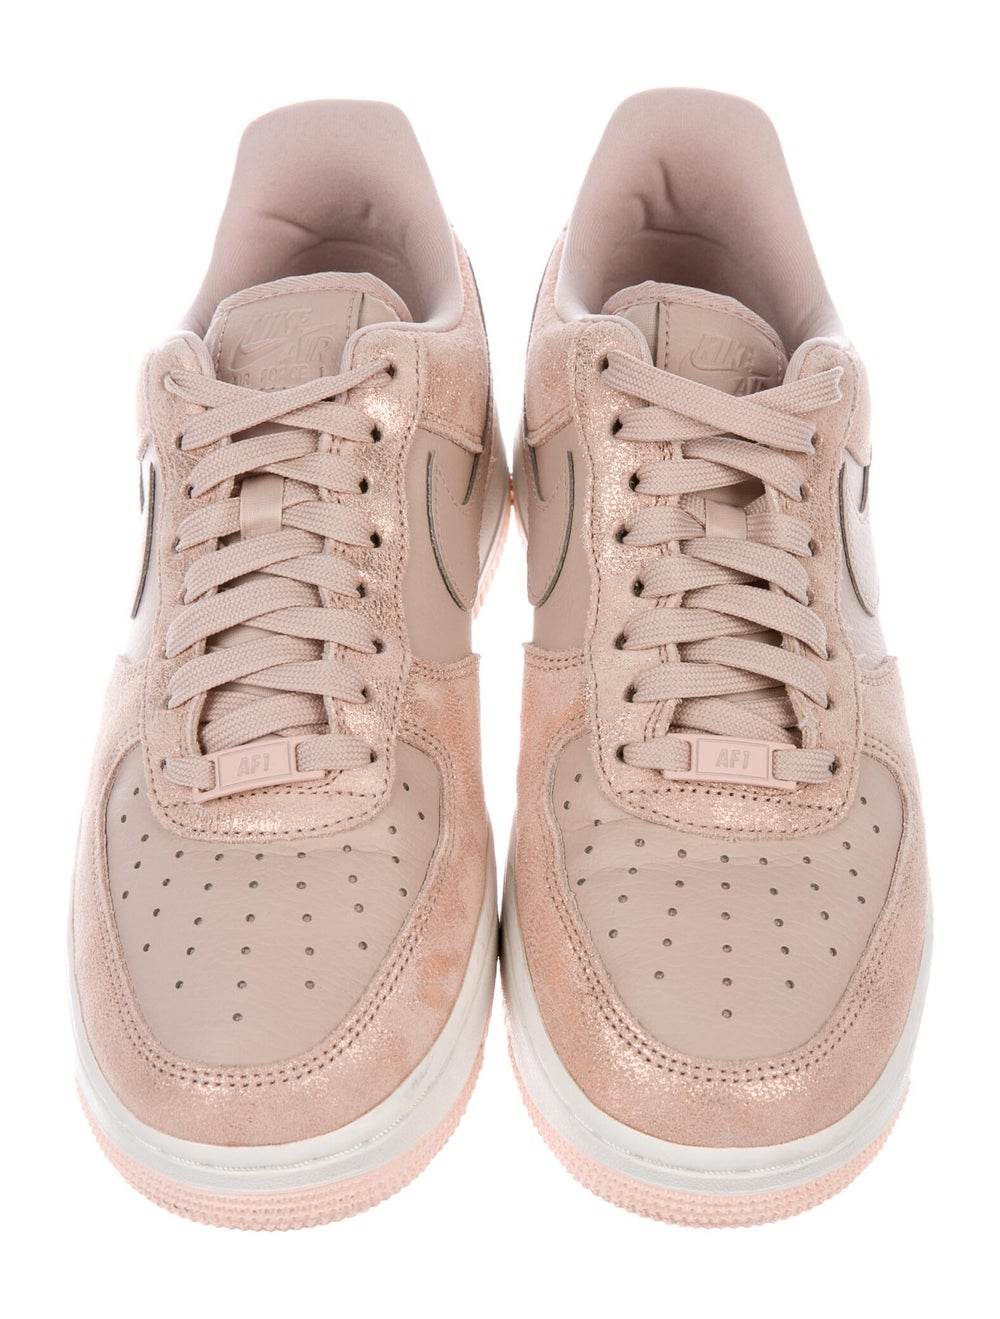 Nike Nike Air Force 1 Sneakers Metallic - image 3